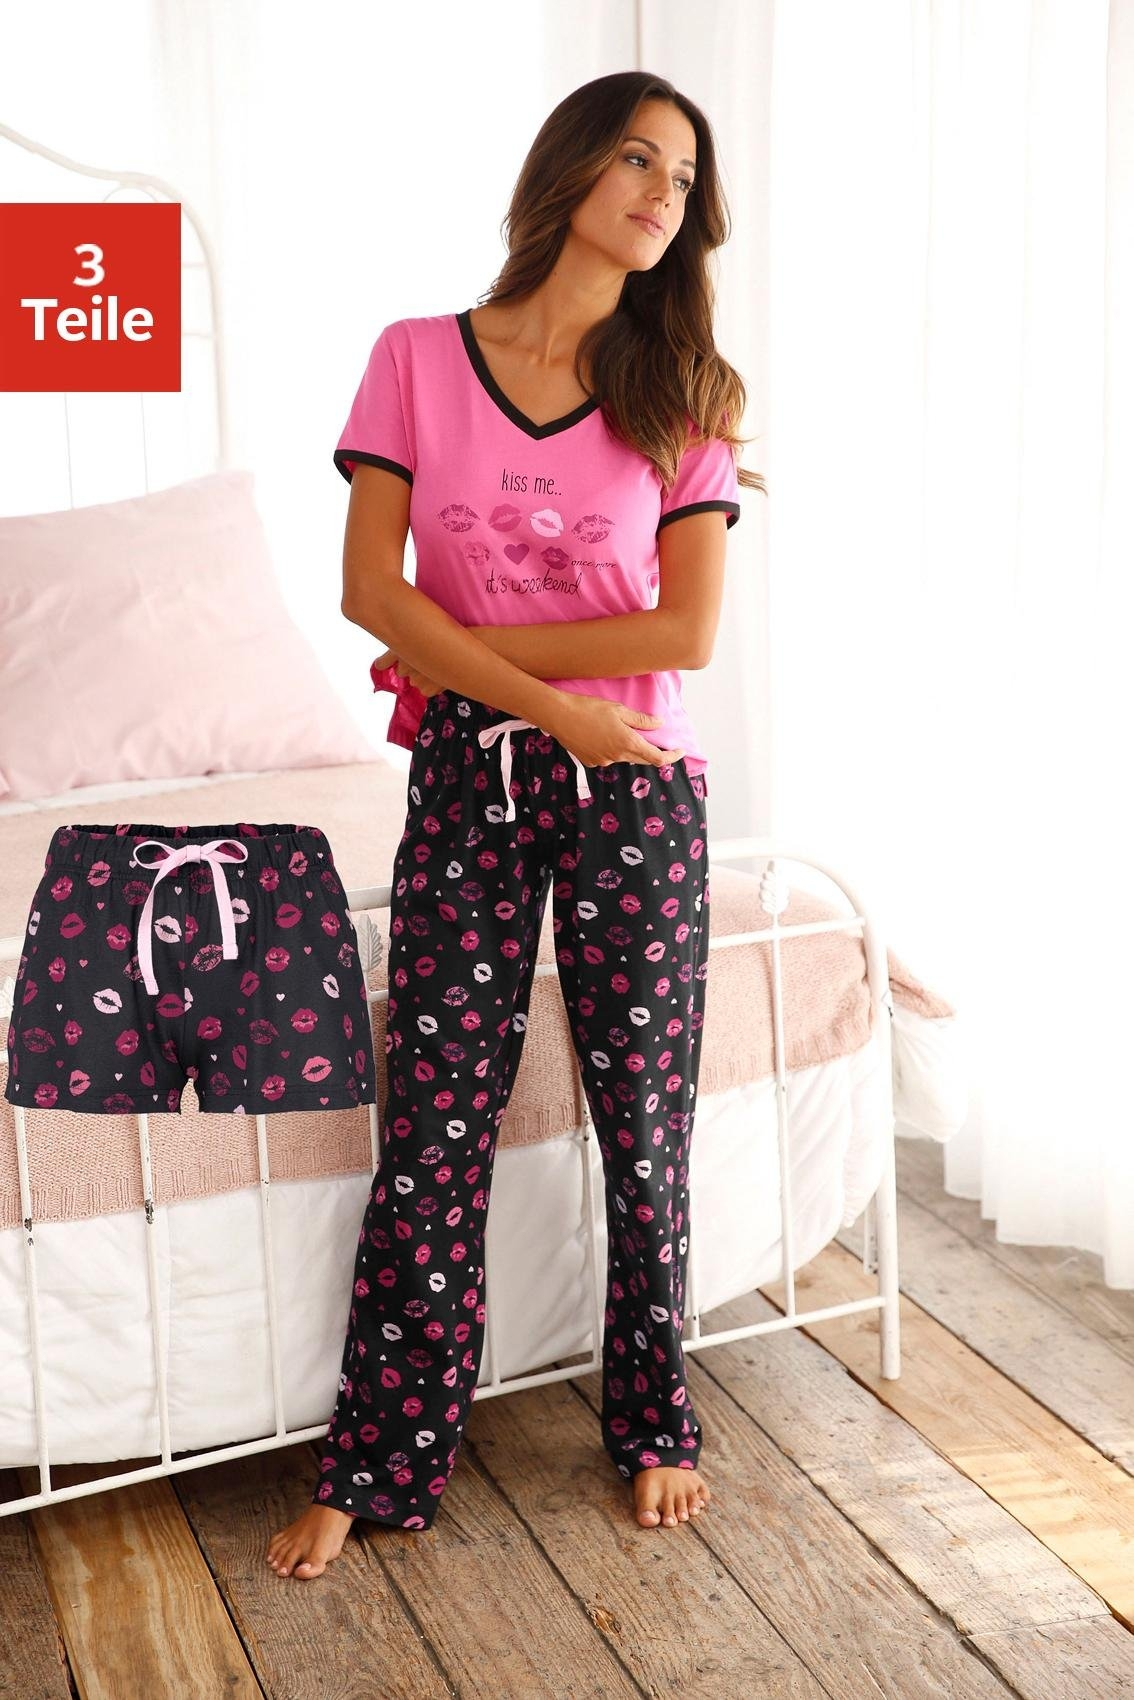 a042d51dd4a ... Dreams pyjama in overhemd-look, Arizona pyjama in college-look met  folieprint, H.I.S pyjama, Vivance Dreams pyjama in klassiek model met  reverskraag